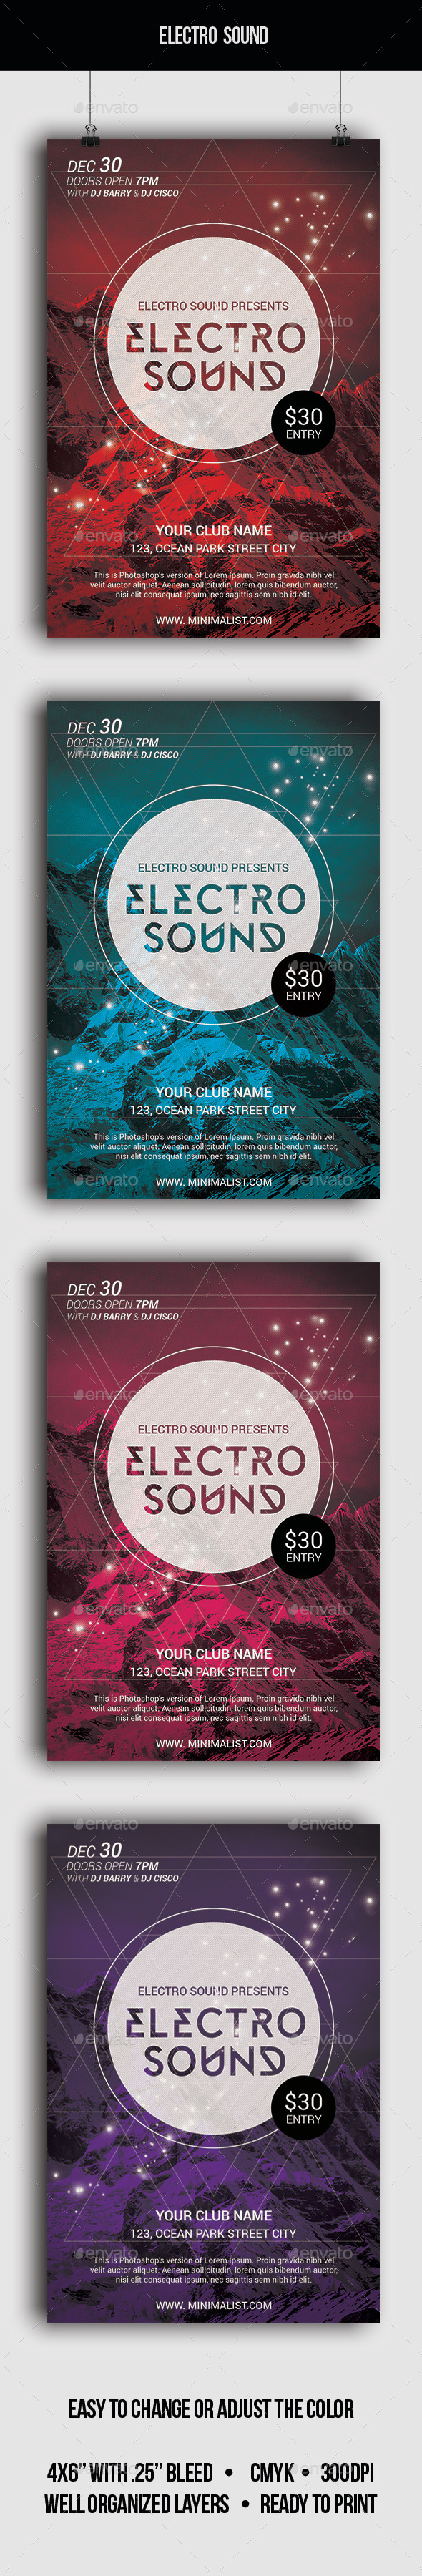 Electro Sound - Flyer - Clubs & Parties Events